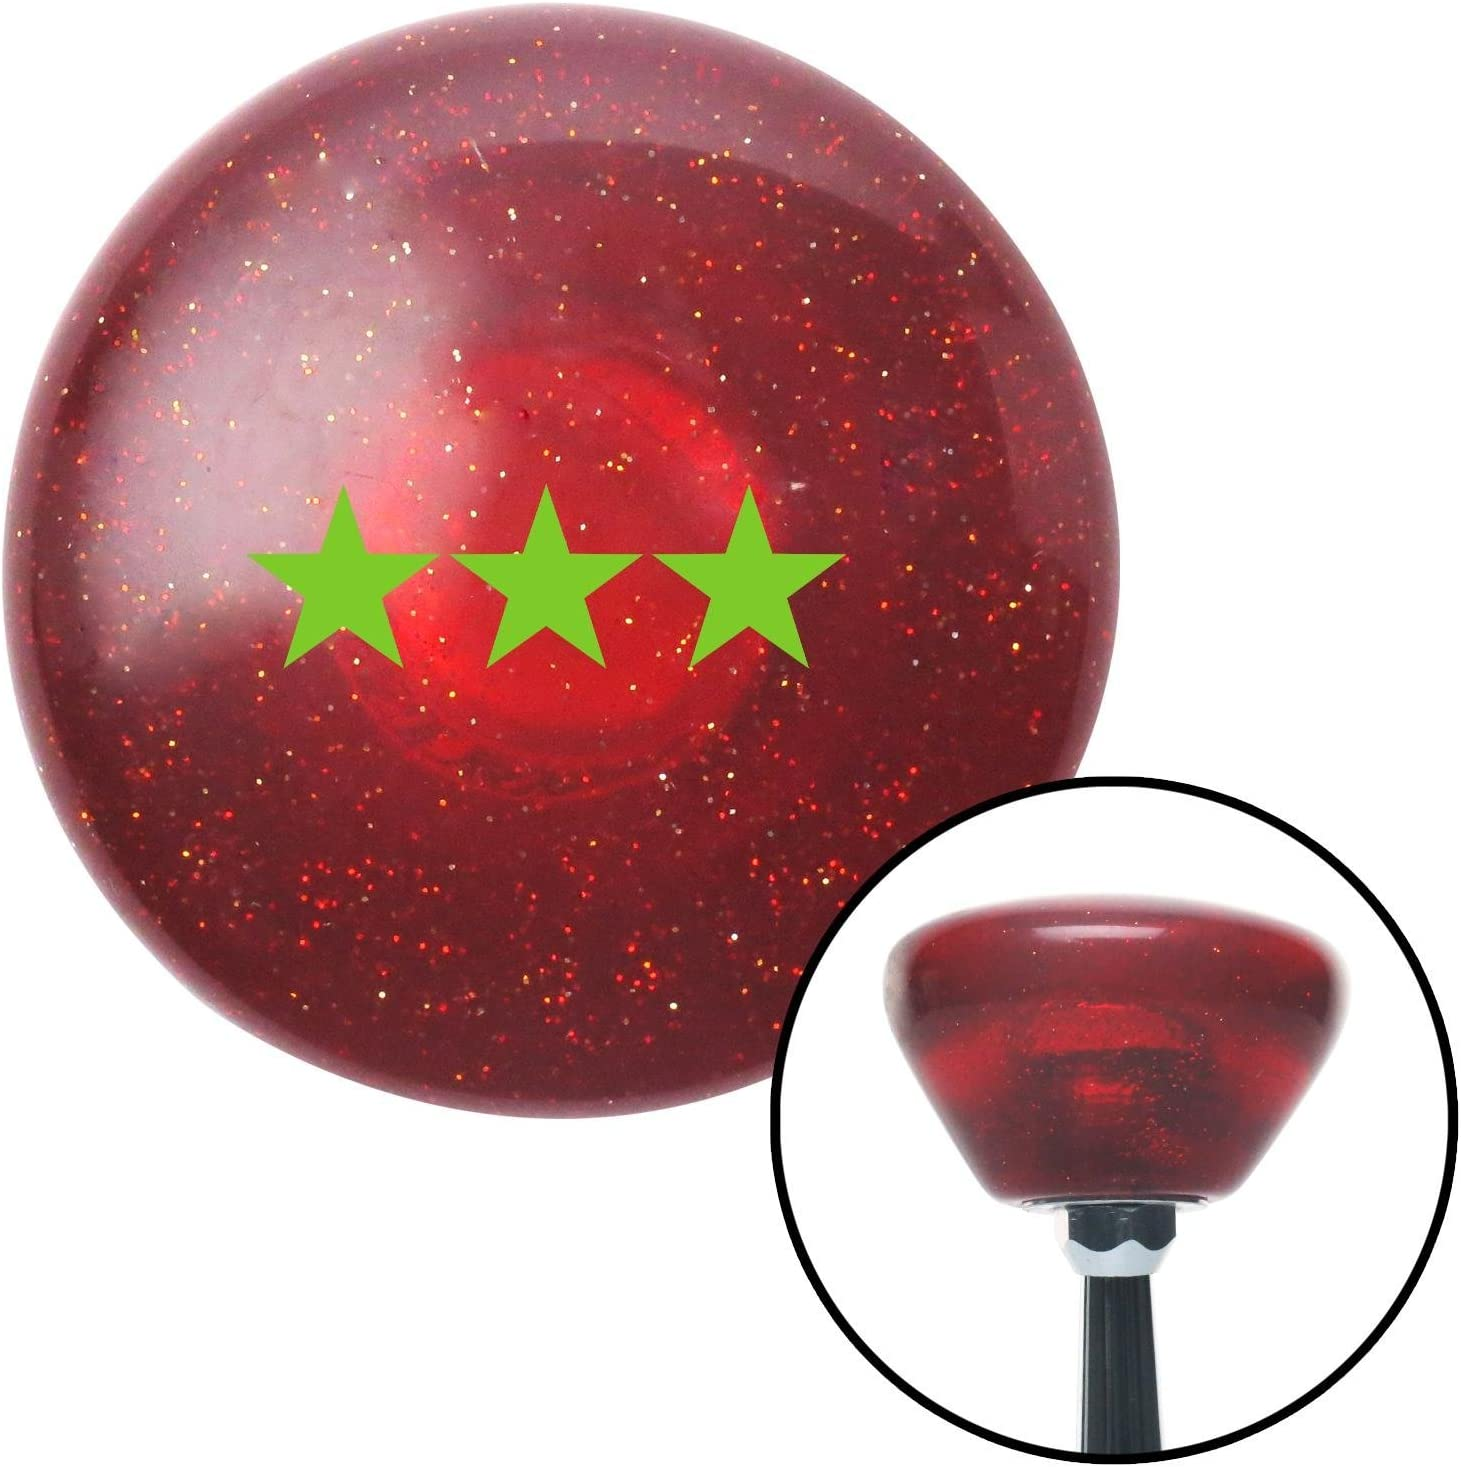 American Shifter 198917 Red Retro Metal Flake Shift Knob with M16 x 1.5 Insert (Green Officer 09 - Vice Admiral)